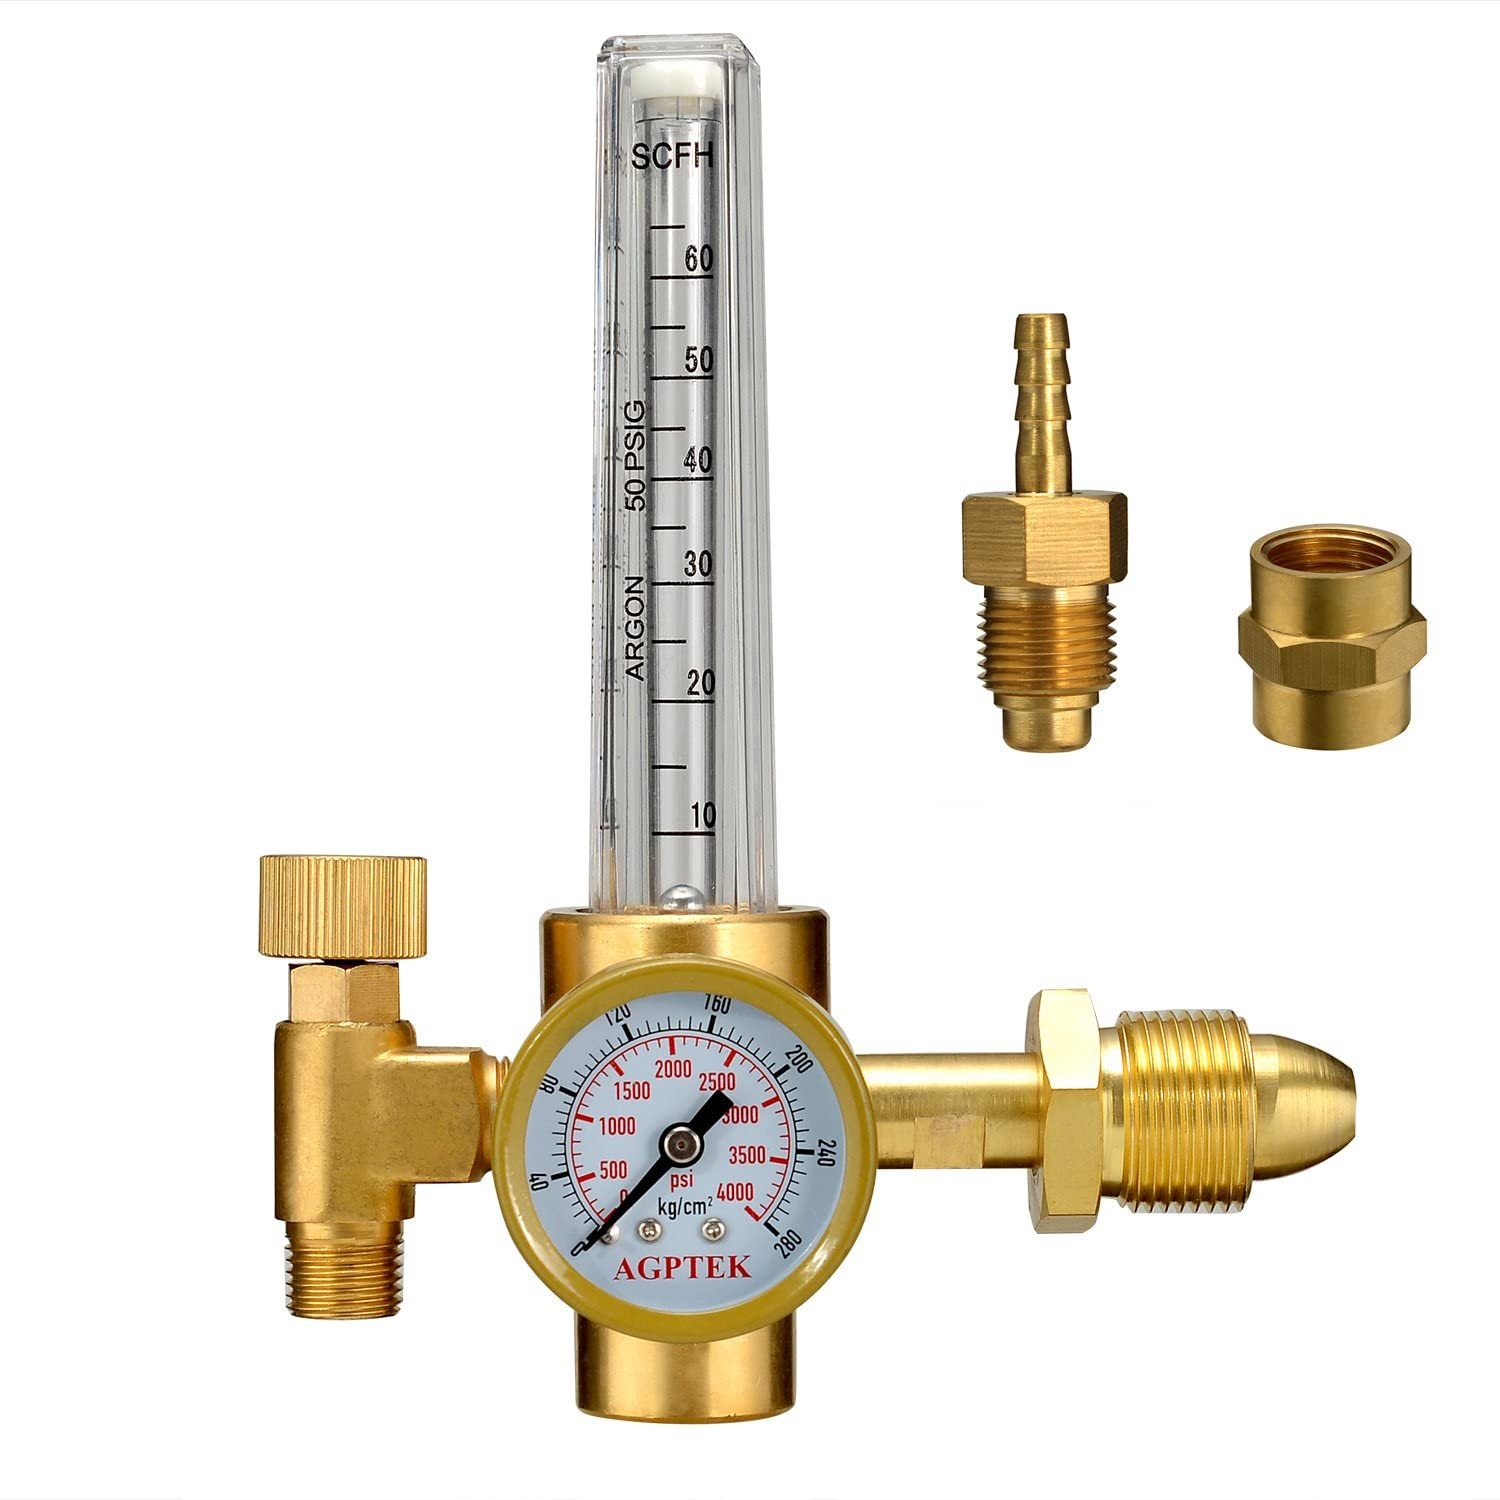 AGPTEK Mig/Tig Flow Meter Regulator